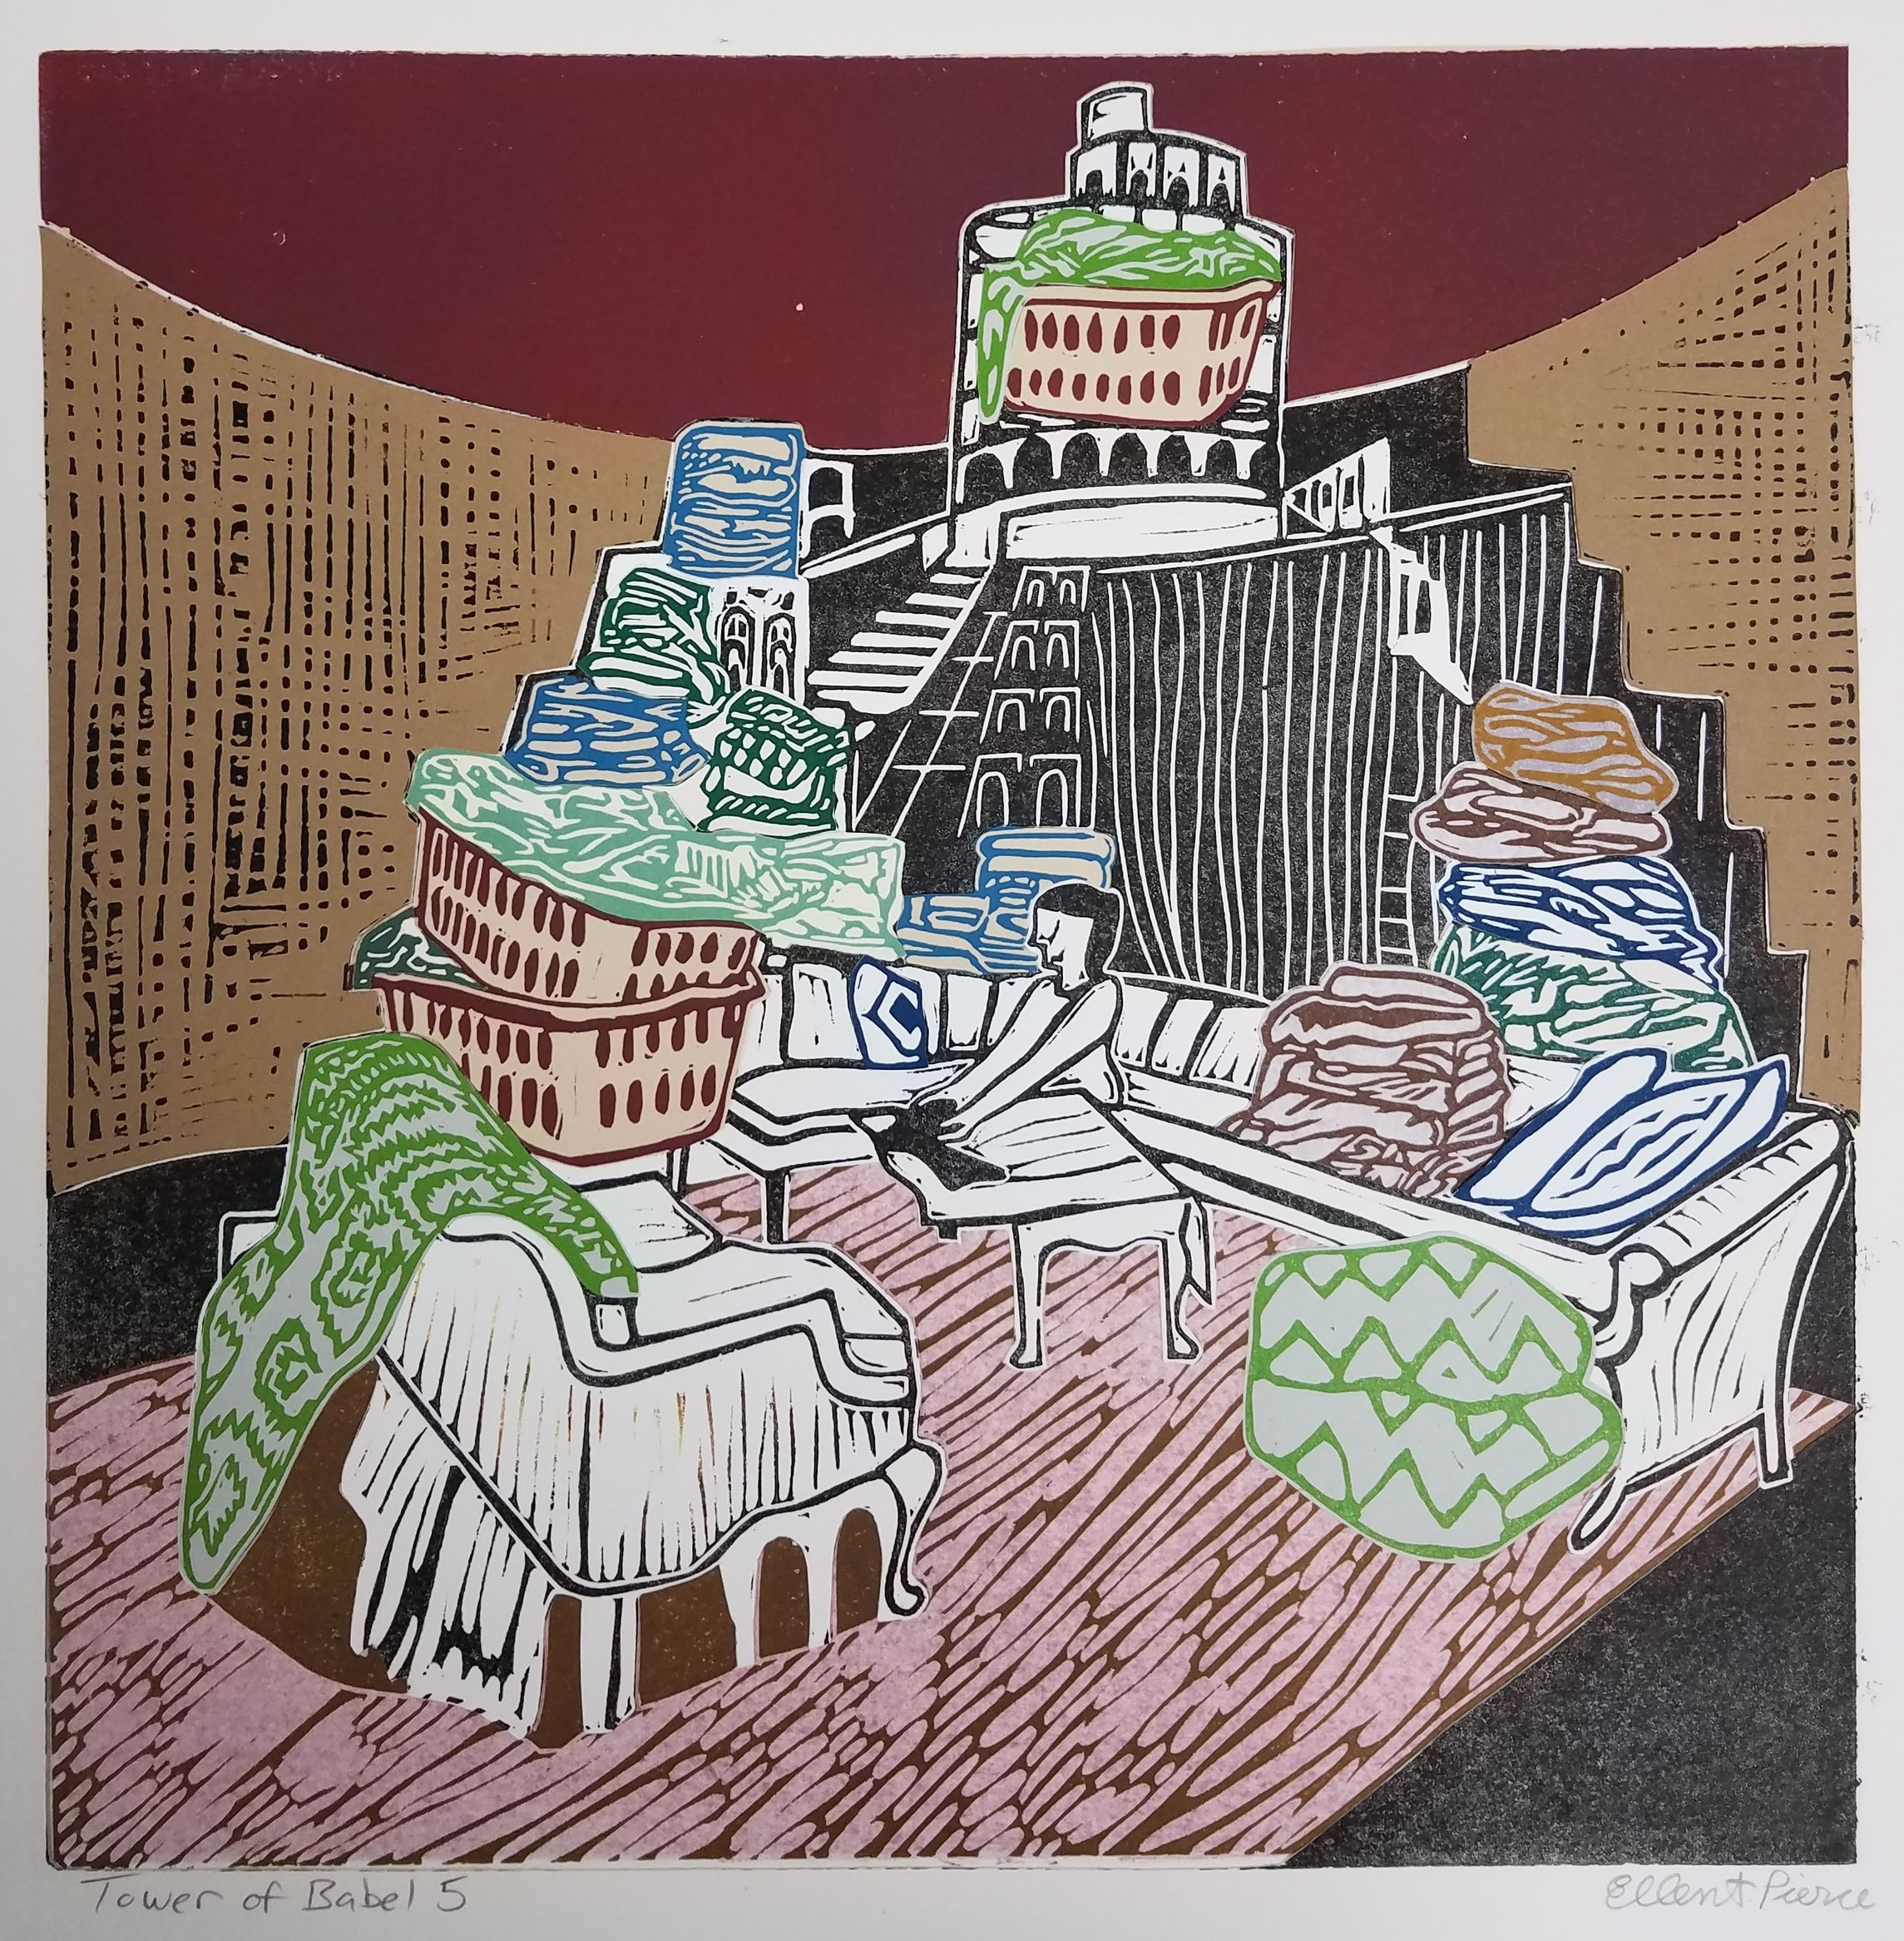 "Ellen Shattuck Pierce ,  Tower of Babel 5 , collaged linoleum print, variable edition, 16 3/4"" x 16 3/4"" framed, $450"